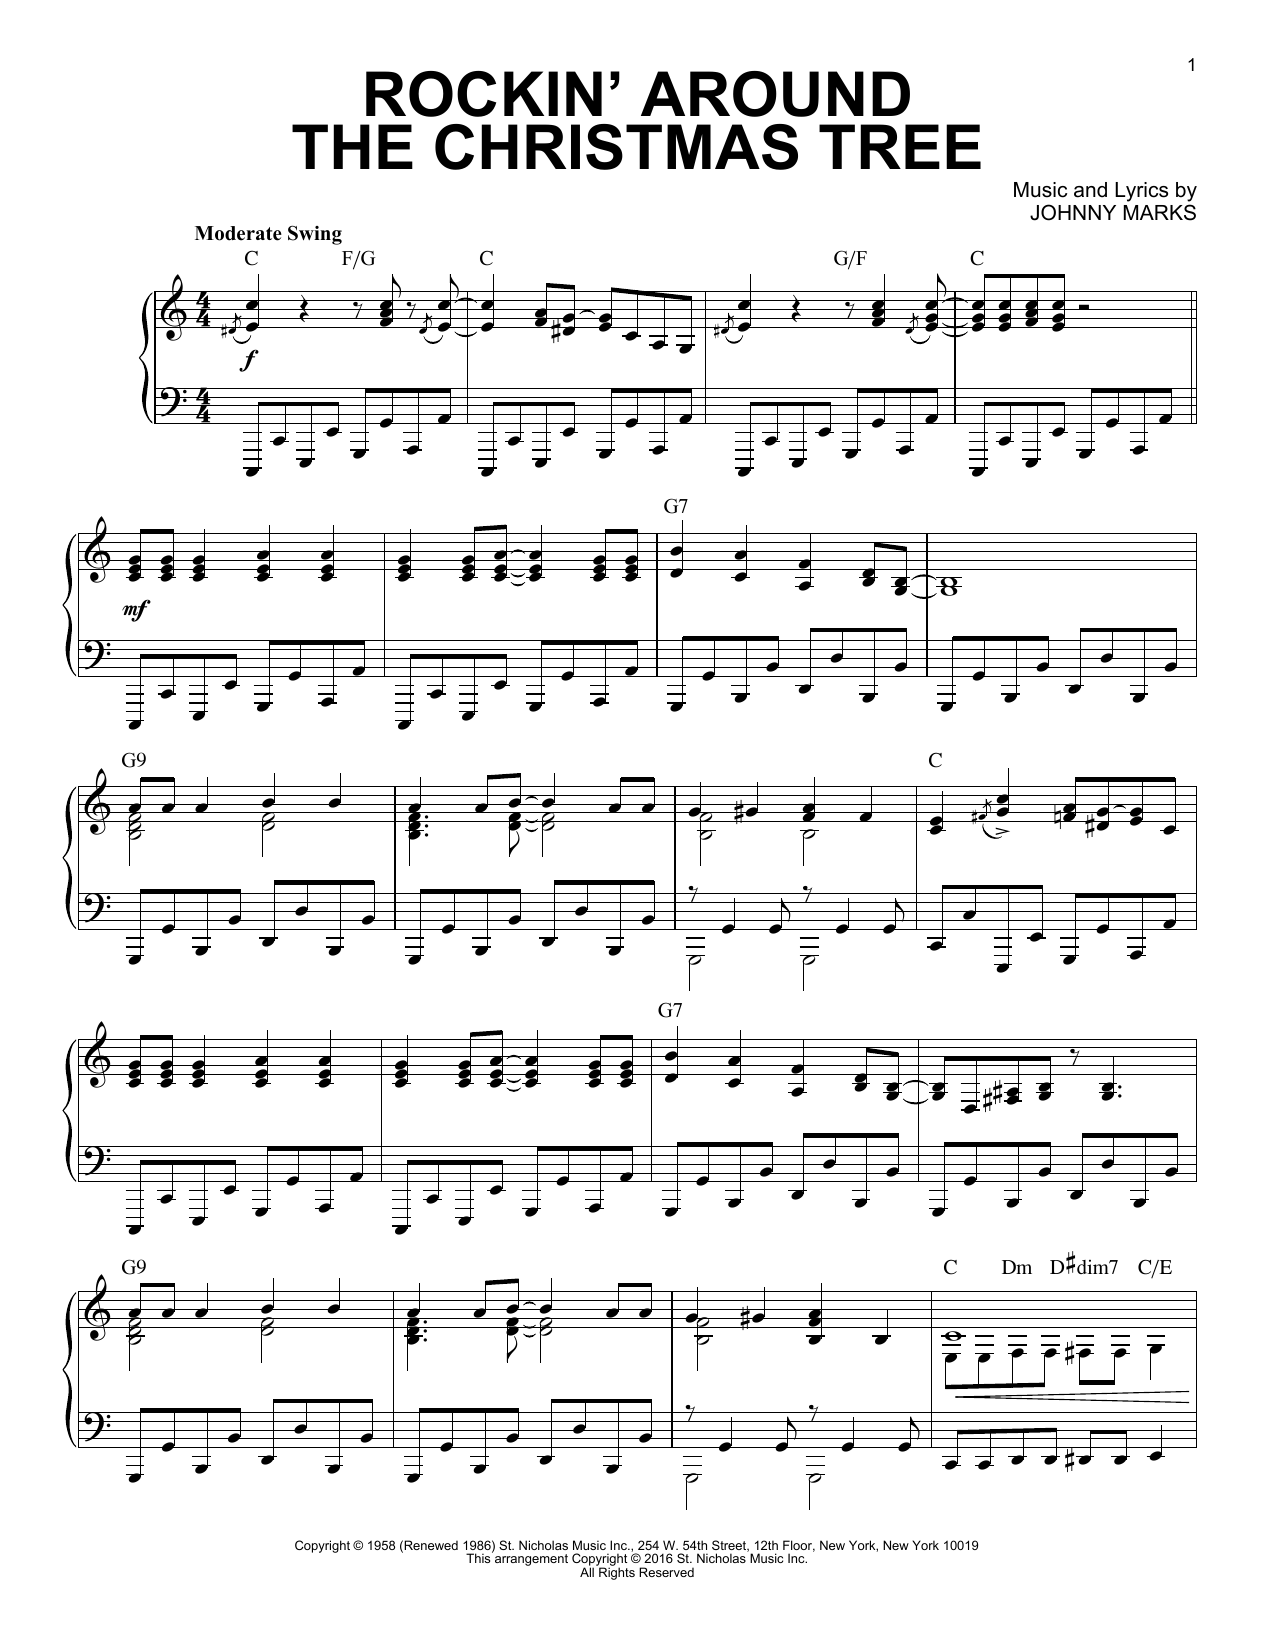 Johnny Marks 'Rockin' Around The Christmas Tree [Jazz version] arr. Brent  Edstrom' Sheet Music Notes, Chords   Download Printable Piano Solo   SKU  ...